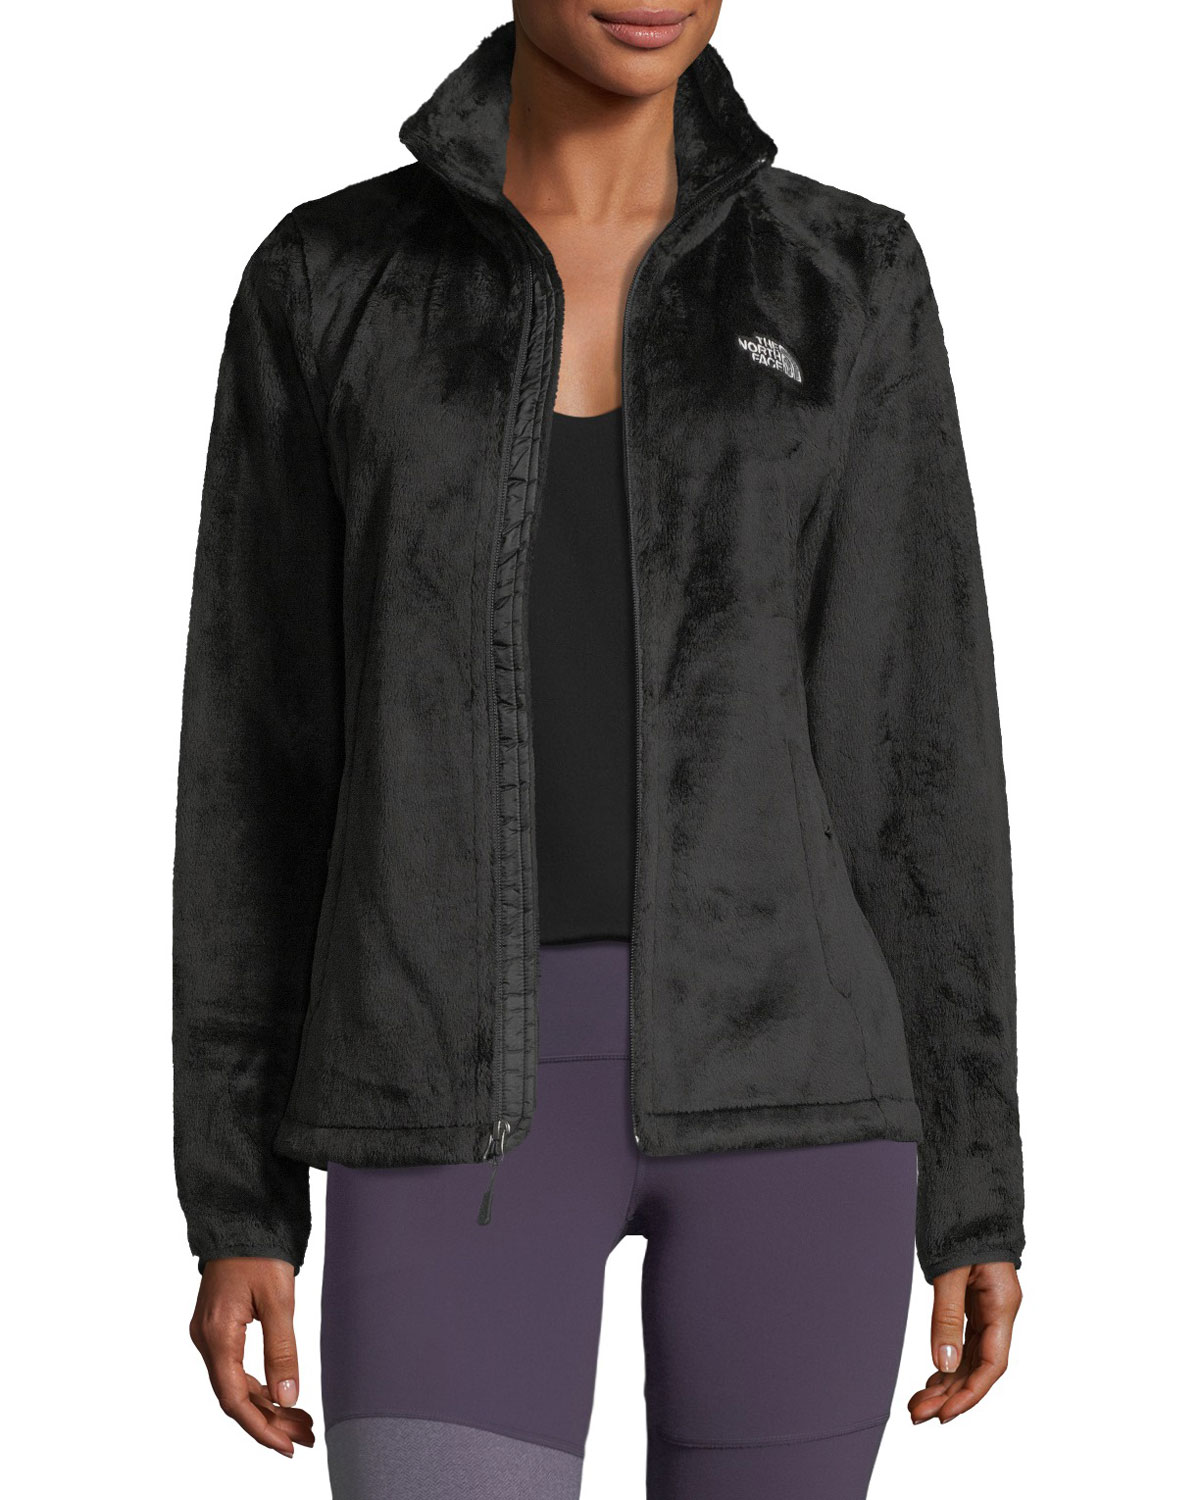 8264433b22 The North Face Osito Zip-Front Fleece Performance Jacket, Black ...